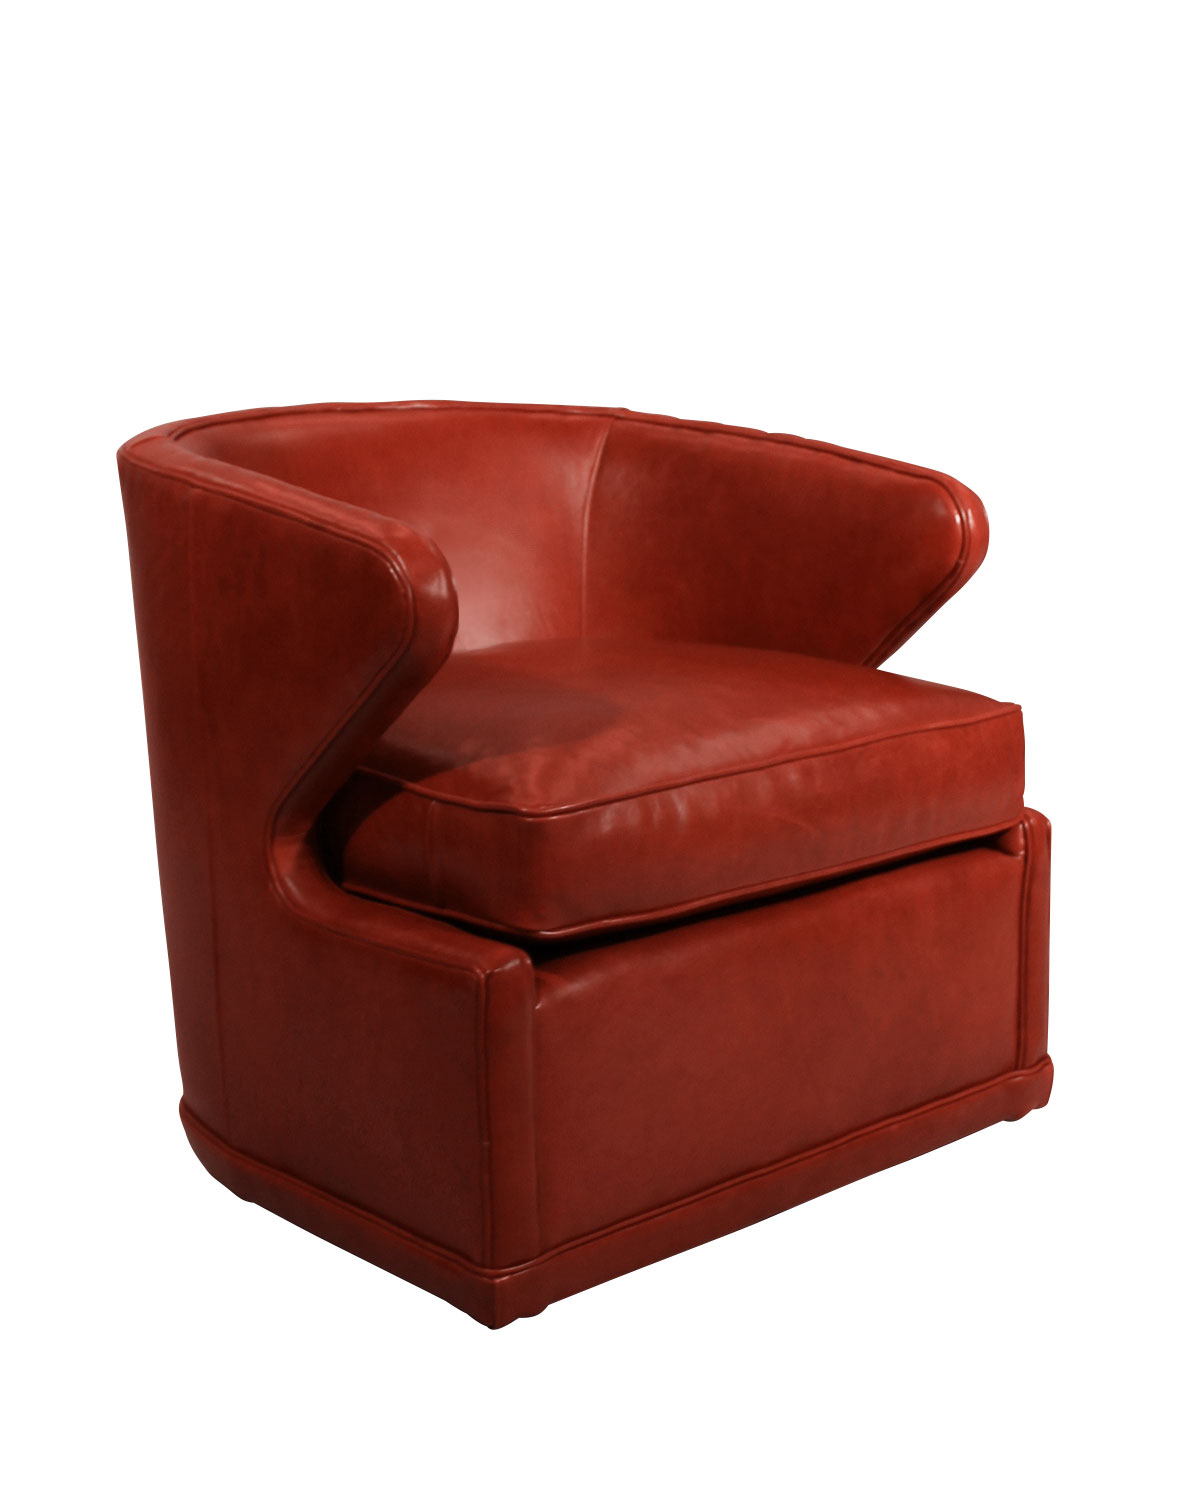 Red Leather Swivel Chair Dyna St Clair Red Leather Swivel Chair